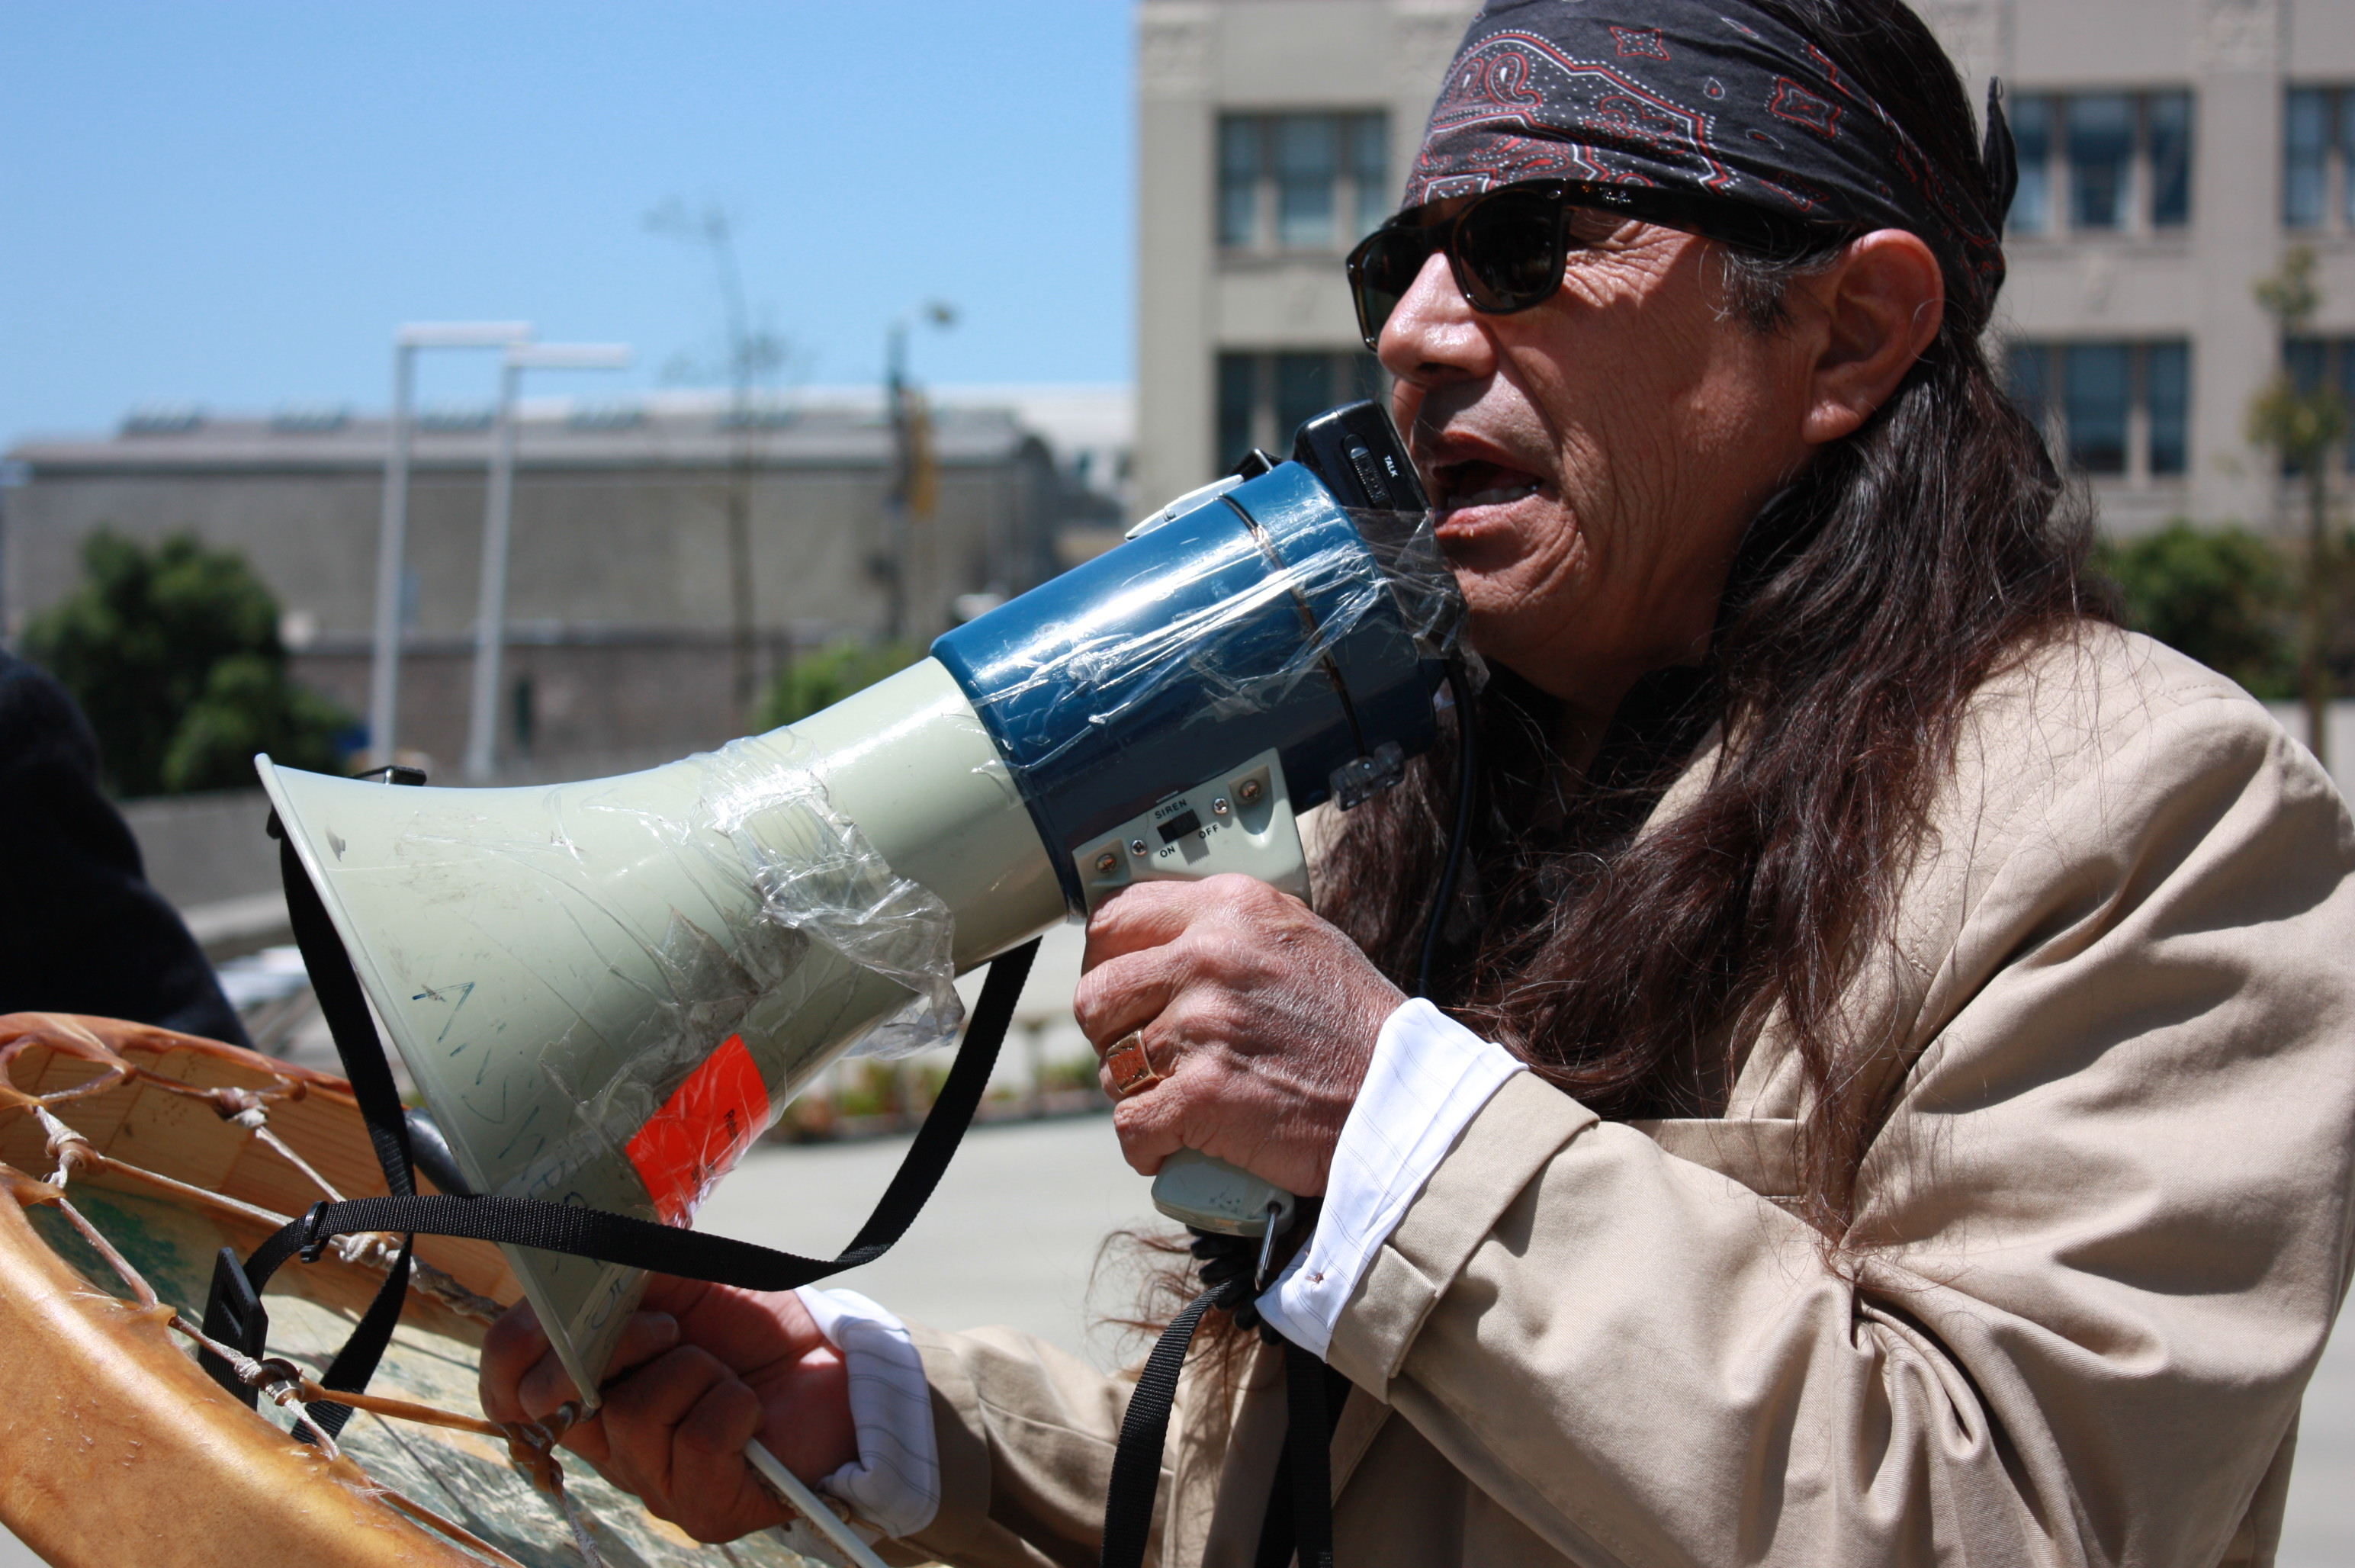 Tony G with bull horn at demo for Leonard Peltier 2009